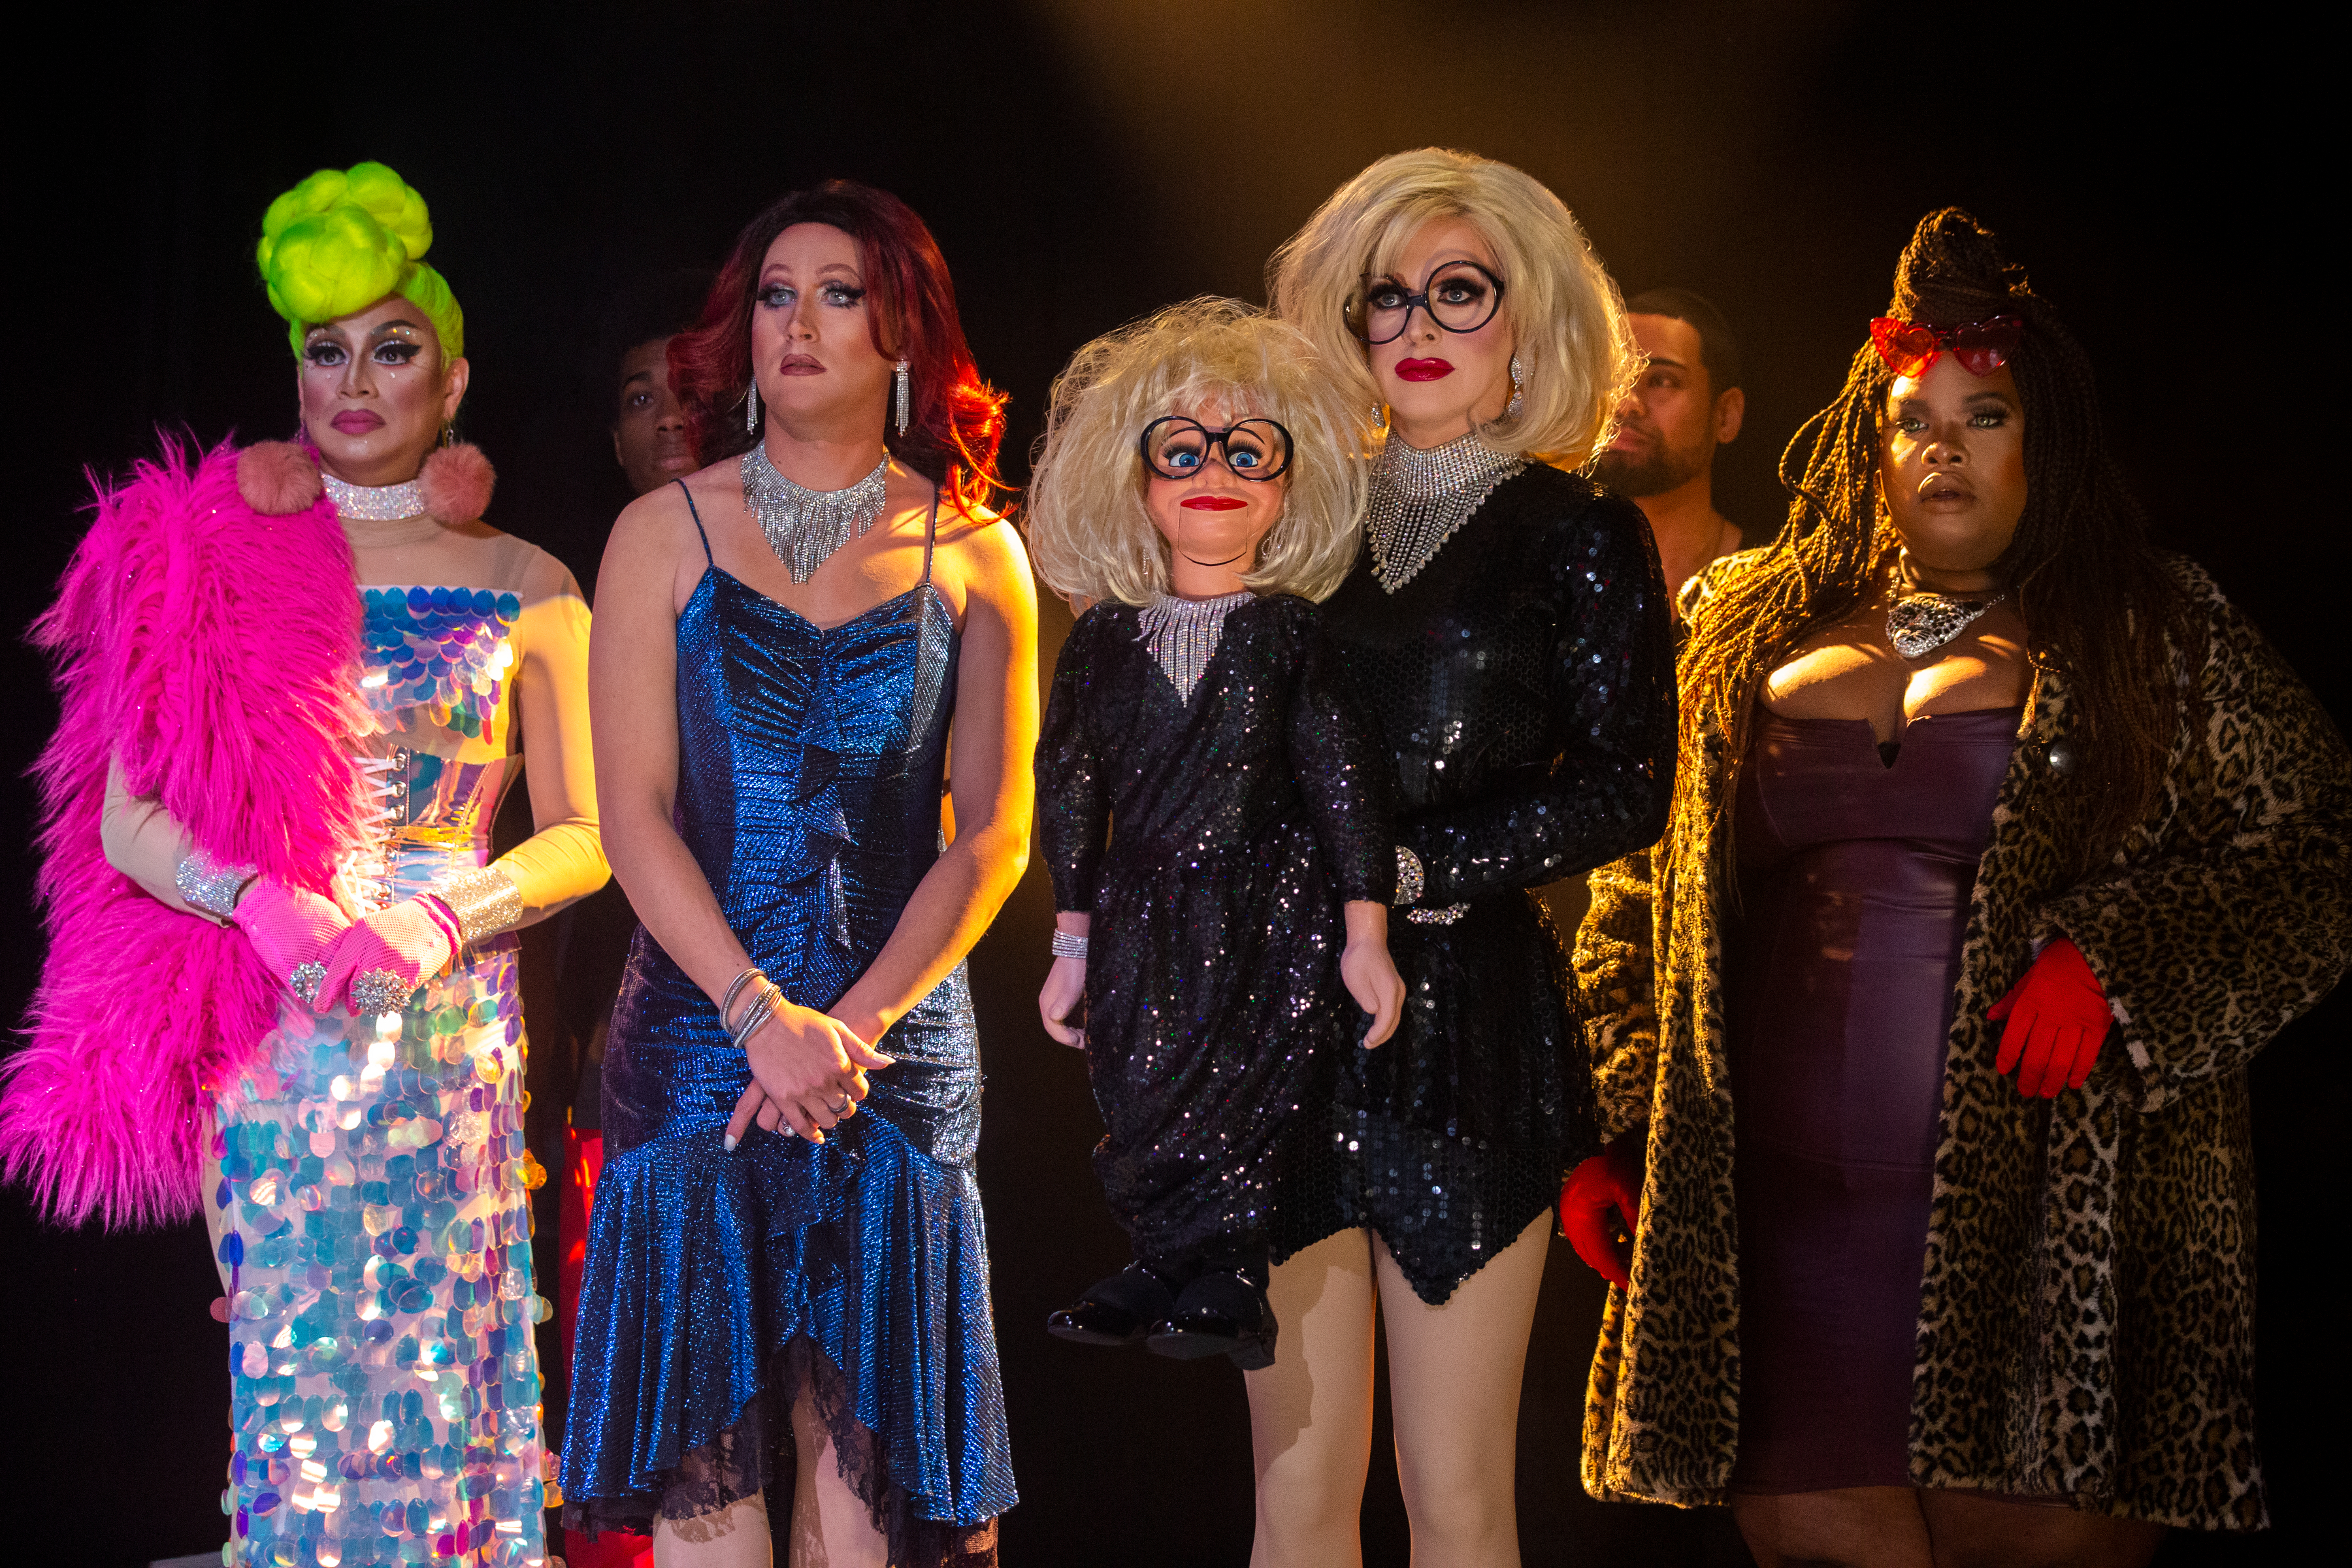 AJ and the Queen is bringing together a lot of Drag Race royalty